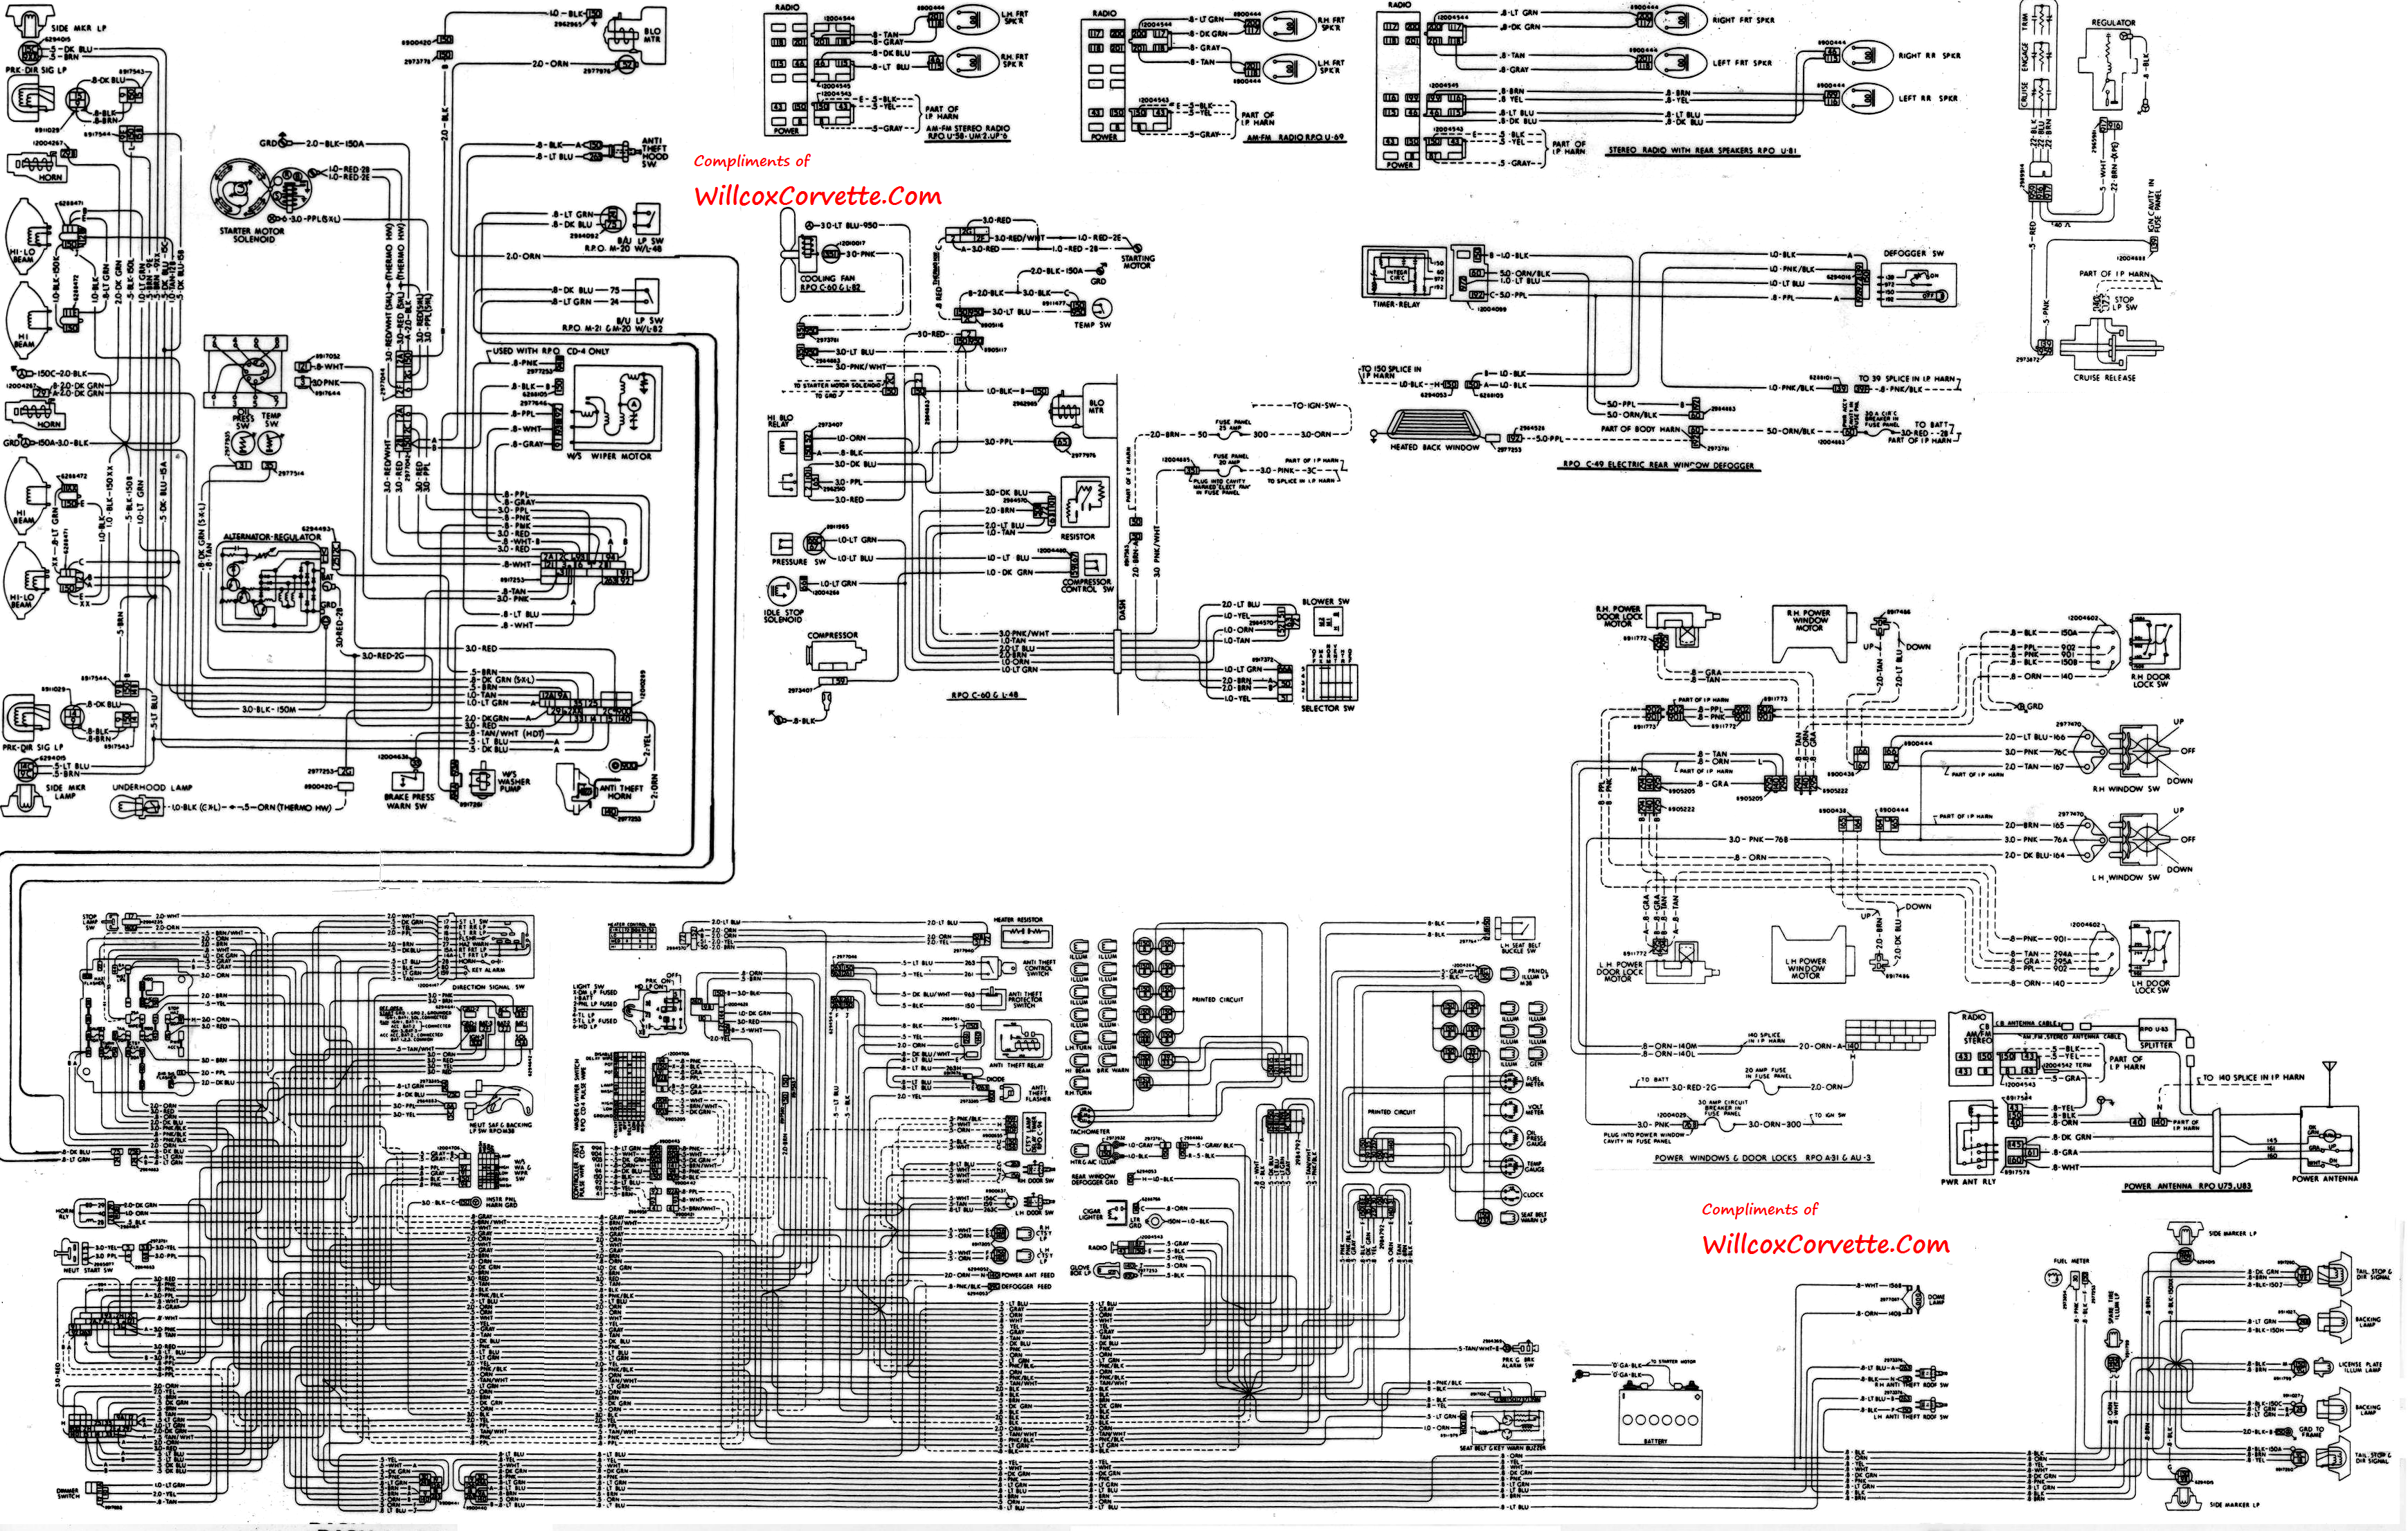 1979 wire diagram 1978 corvette wiring diagram pdf 1980 el camino wiring diagram Schecter Diamond Series Wiring Diagram at reclaimingppi.co